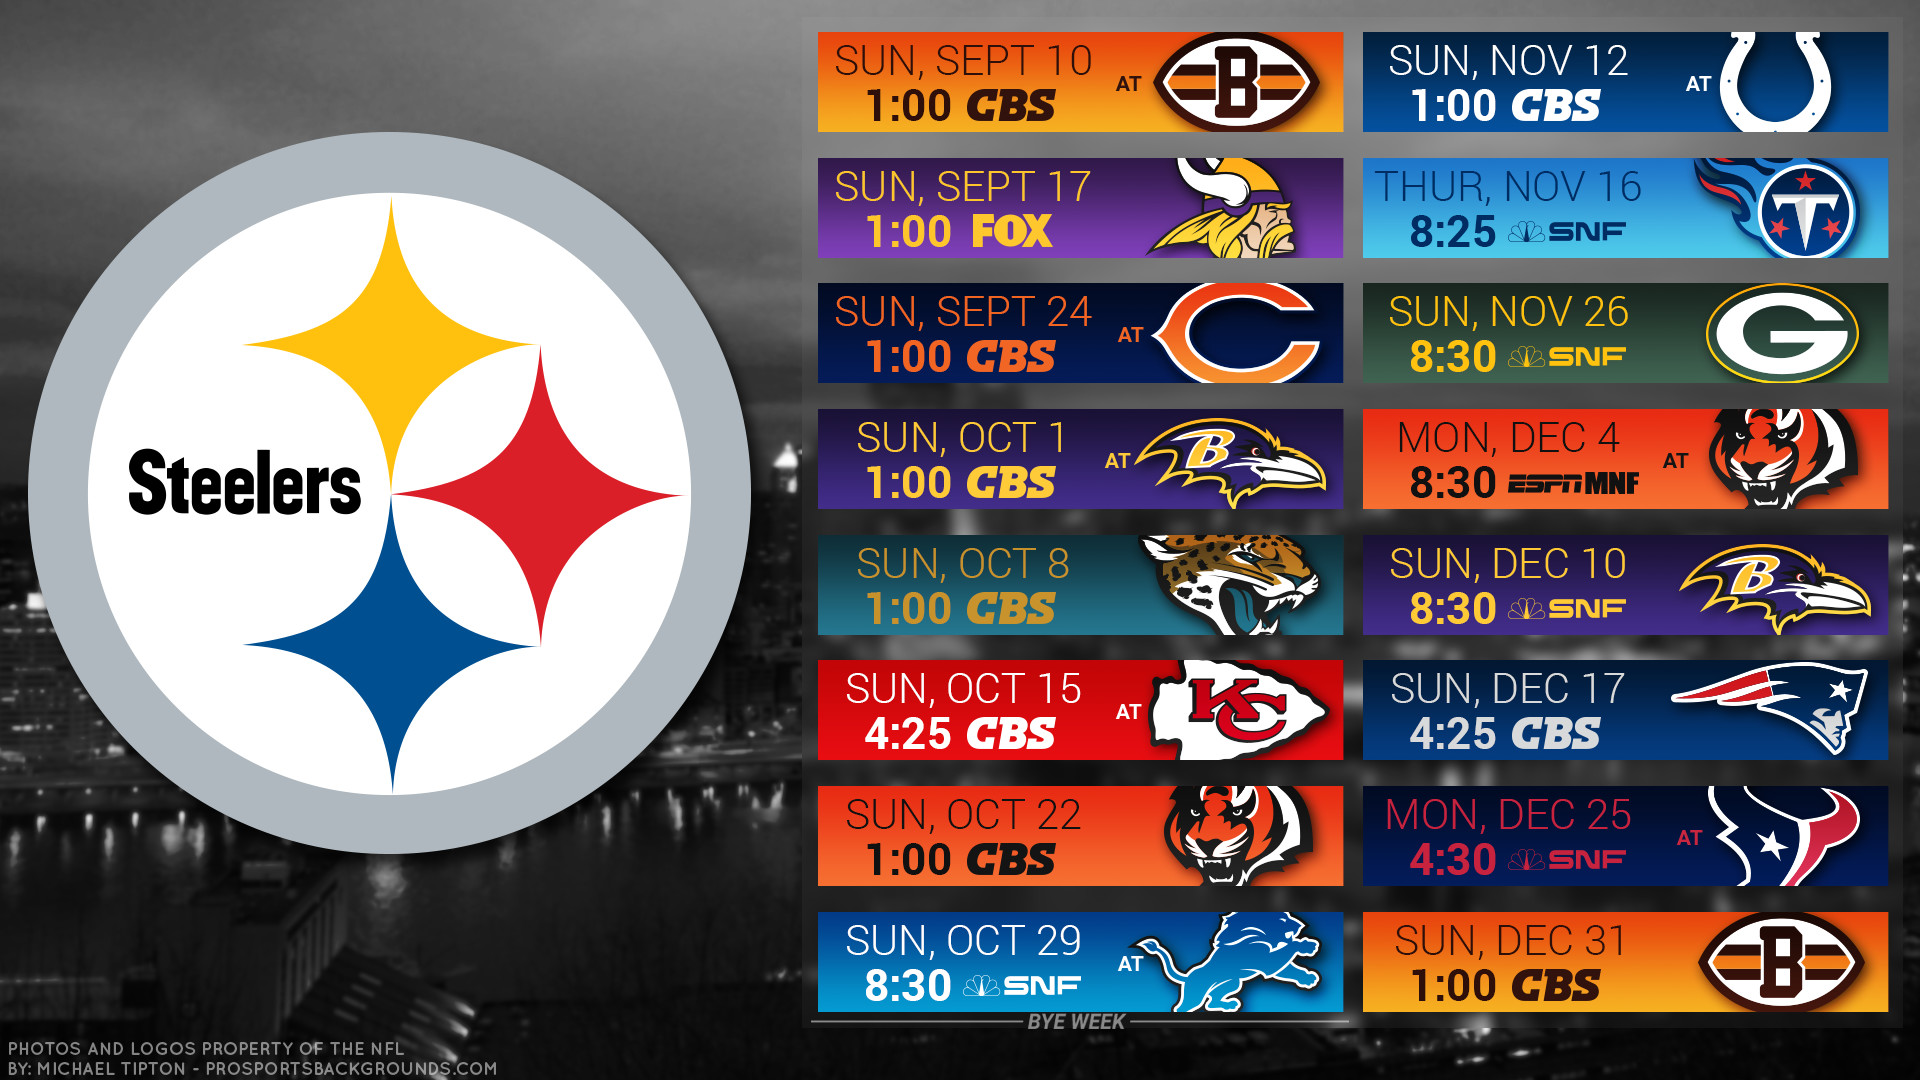 1920x1080 Pittsburgh Steelers 2017 Schedule City Football Logo Wallpaper Free Pc Desktop Computer